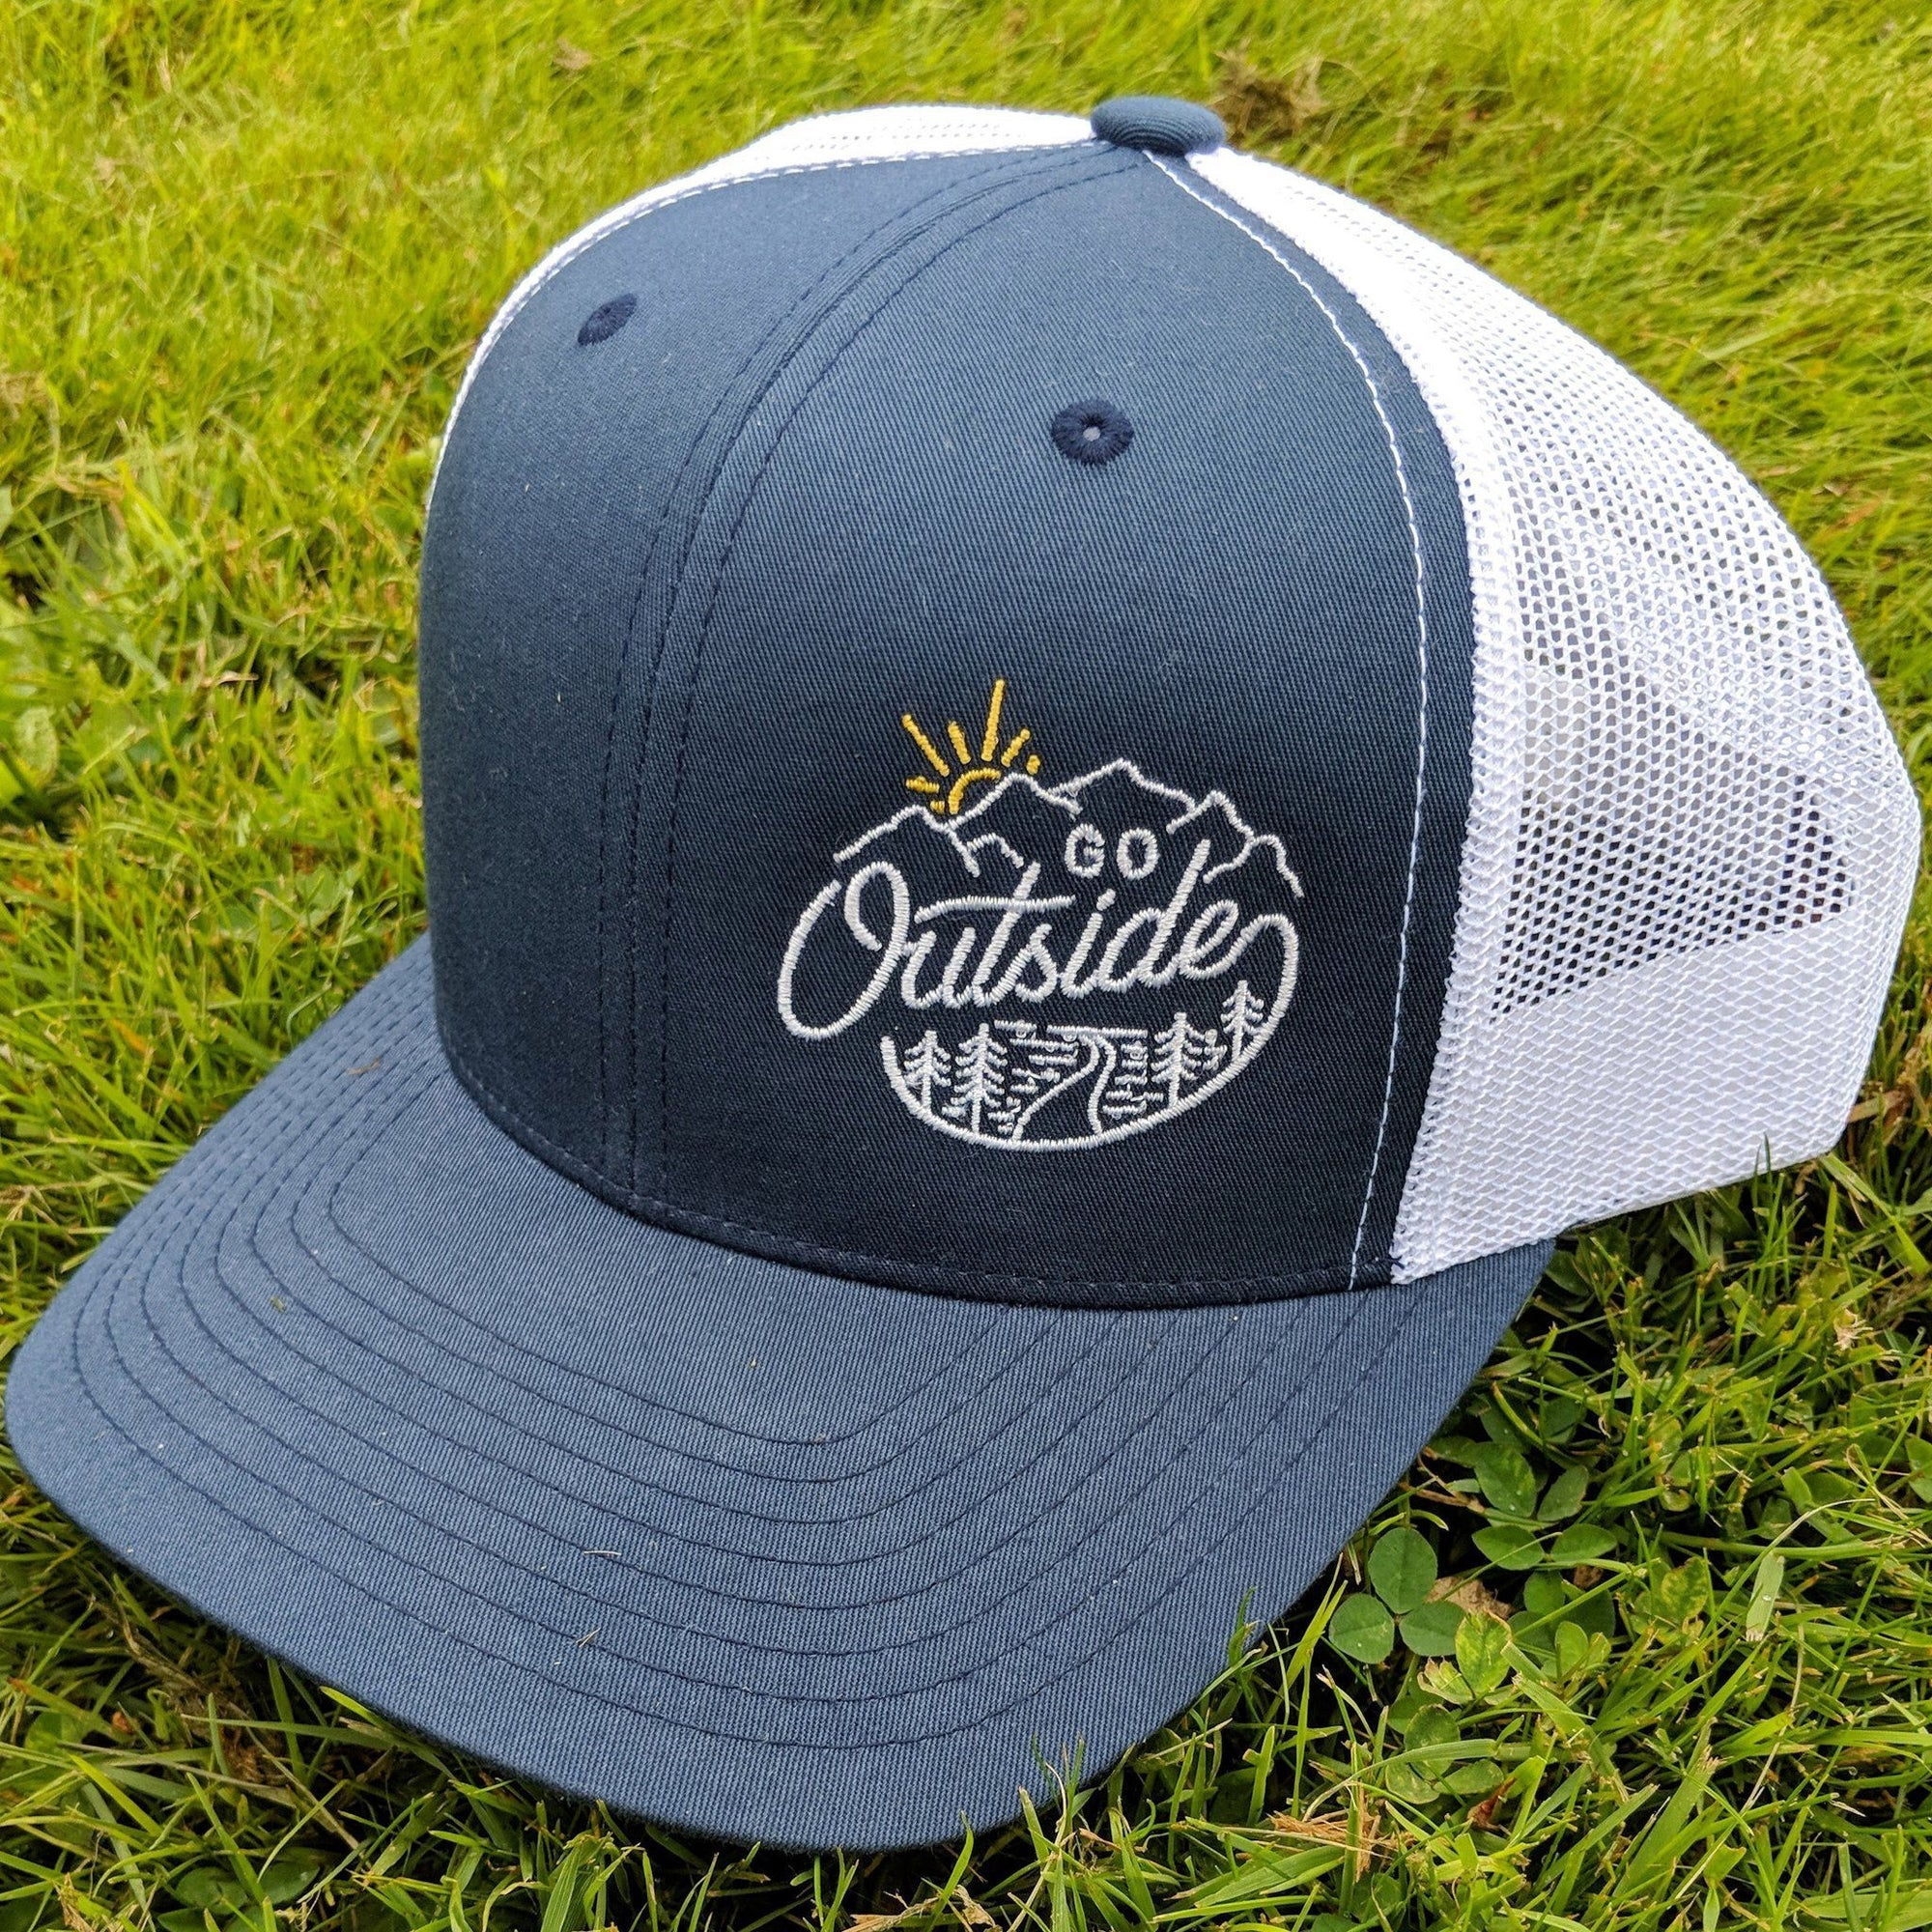 SNW - Go Outside Snapback Curved Bill Trucker Hat - Knock Your Socks Off